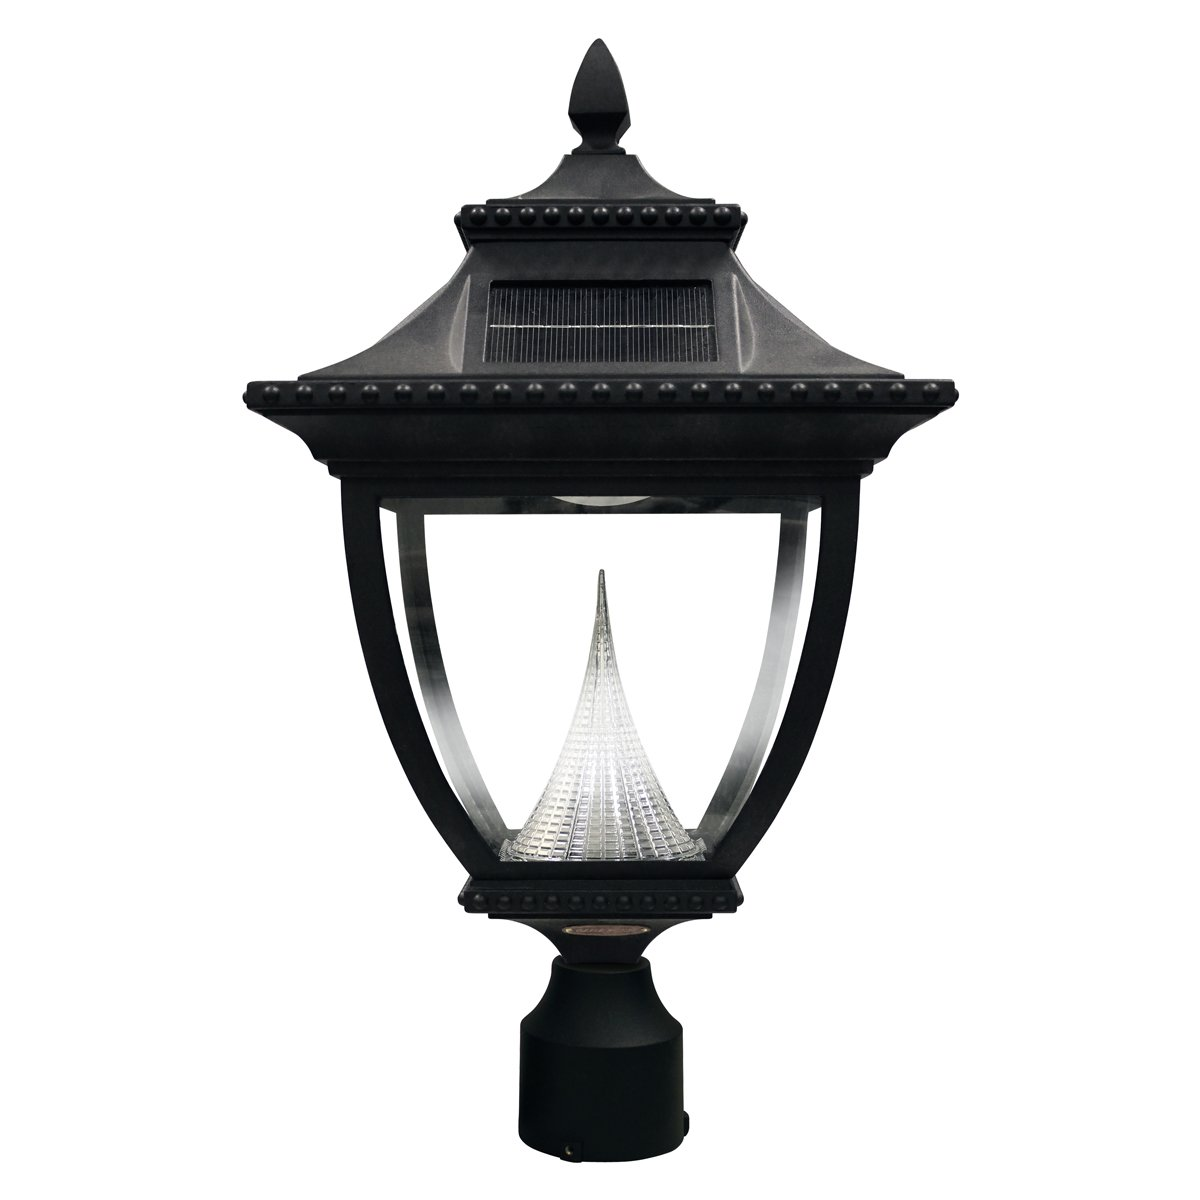 Gama Sonic Pagoda Solar Outdoor LED Light Fixture, 3-Inch Fitter for Post Mount, Black Finish #GS-104F by Gama Sonic